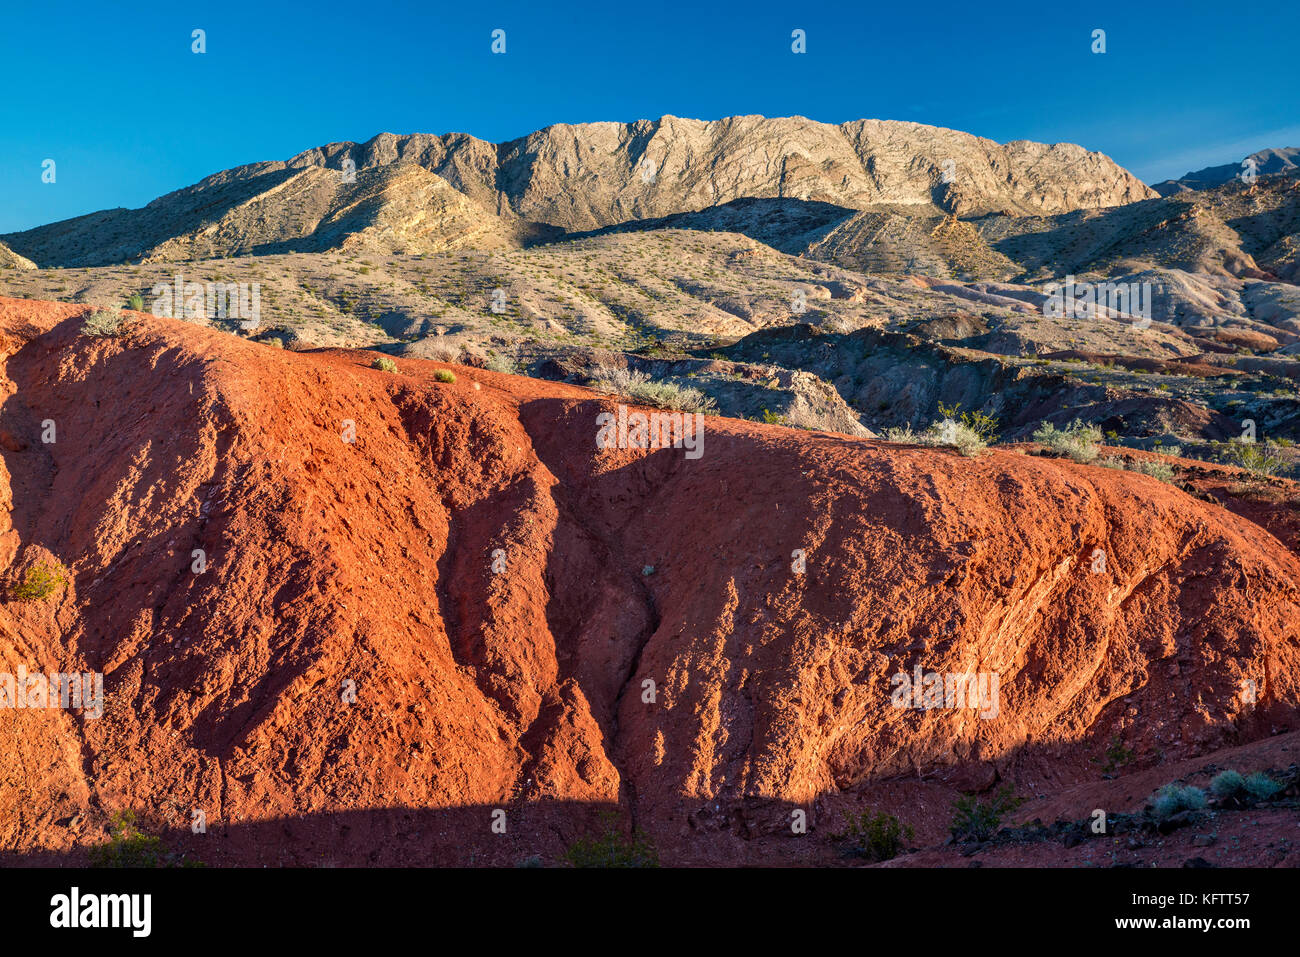 Rock formations, unnamed hills, view from Northshore Road, Lake Mead National Recreation Area, Nevada, USA - Stock Image